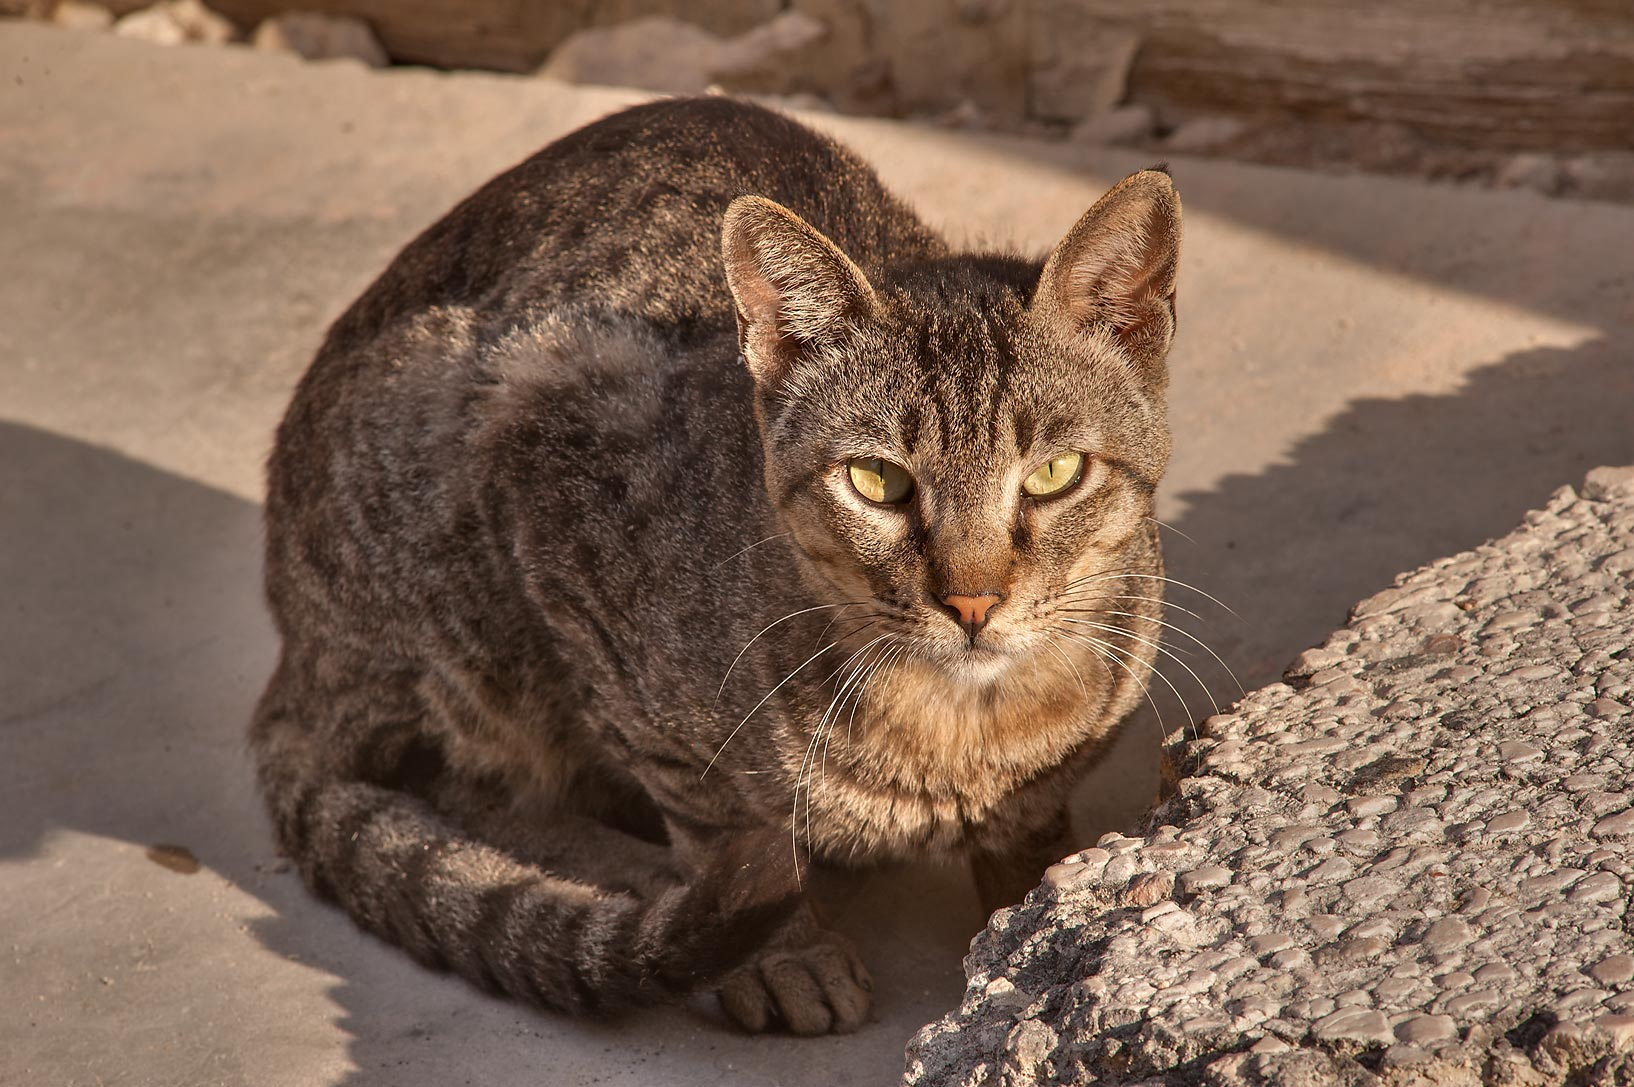 Tabby cat on Al Jassasiya St. in Musheirib area. Doha, Qatar